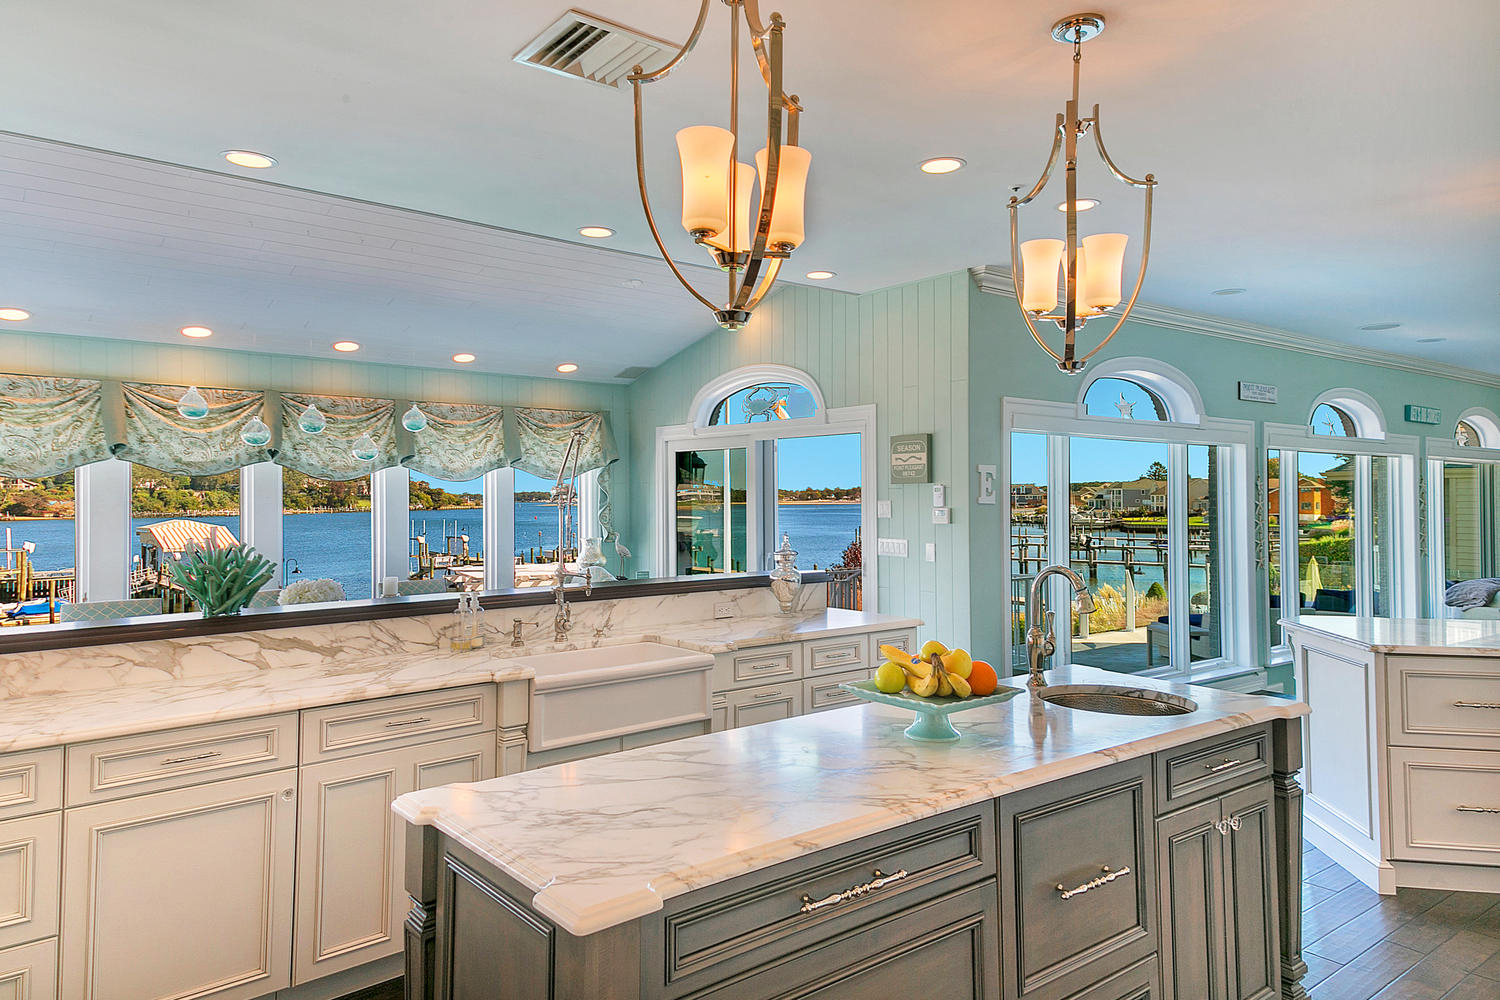 Custom Kitchens, Bathrooms And More At Design Line Kitchens In Sea Girt, NJ